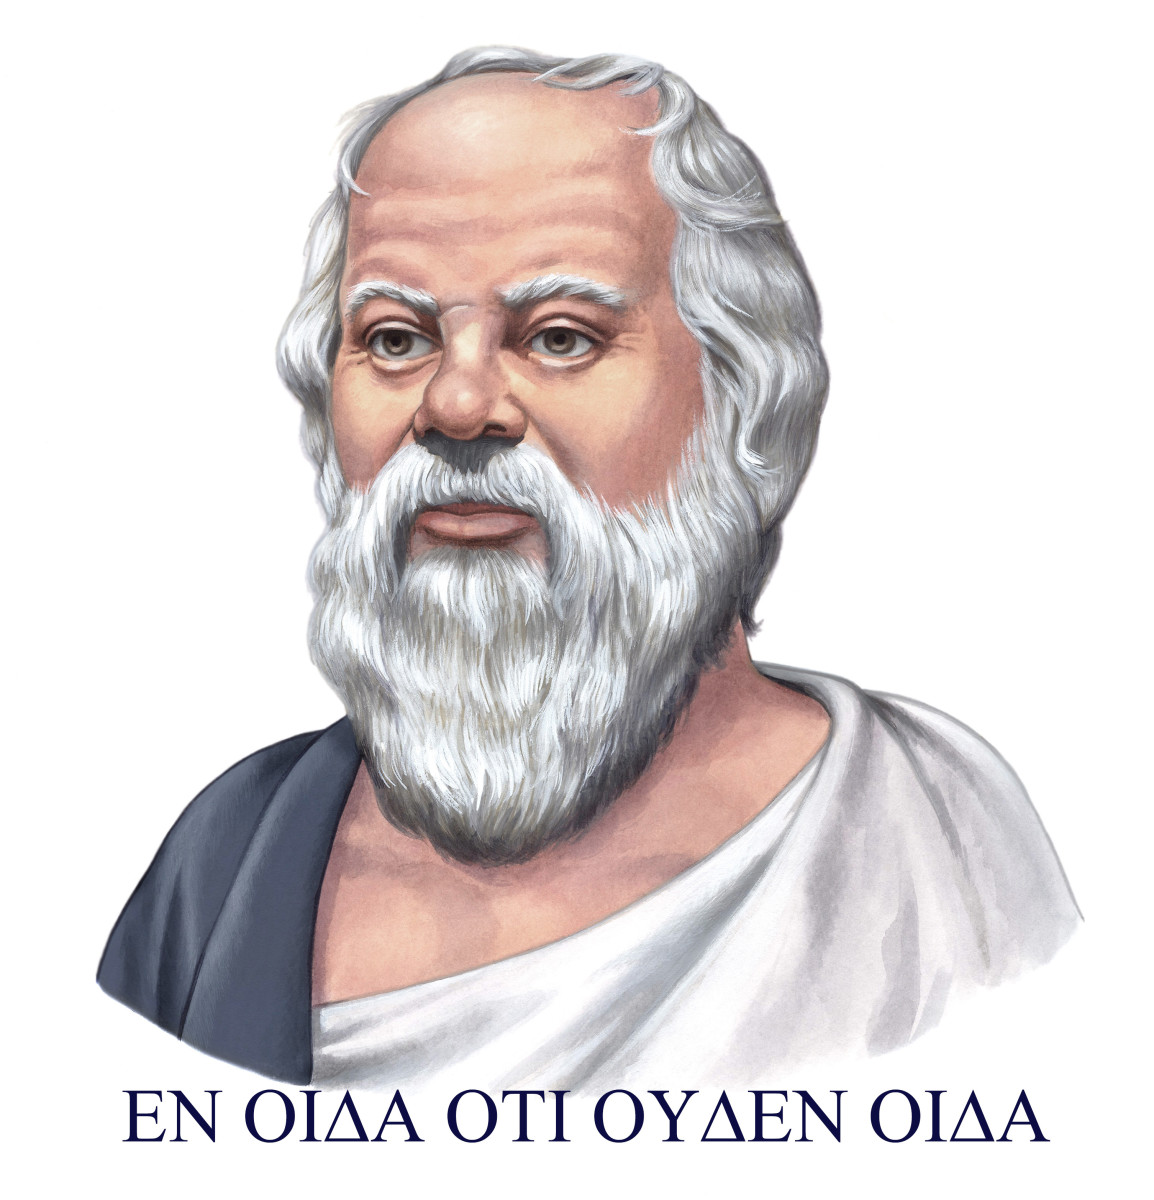 socrates-the-life-and-teaching-of-a-great-philosopher-through-his-sayings